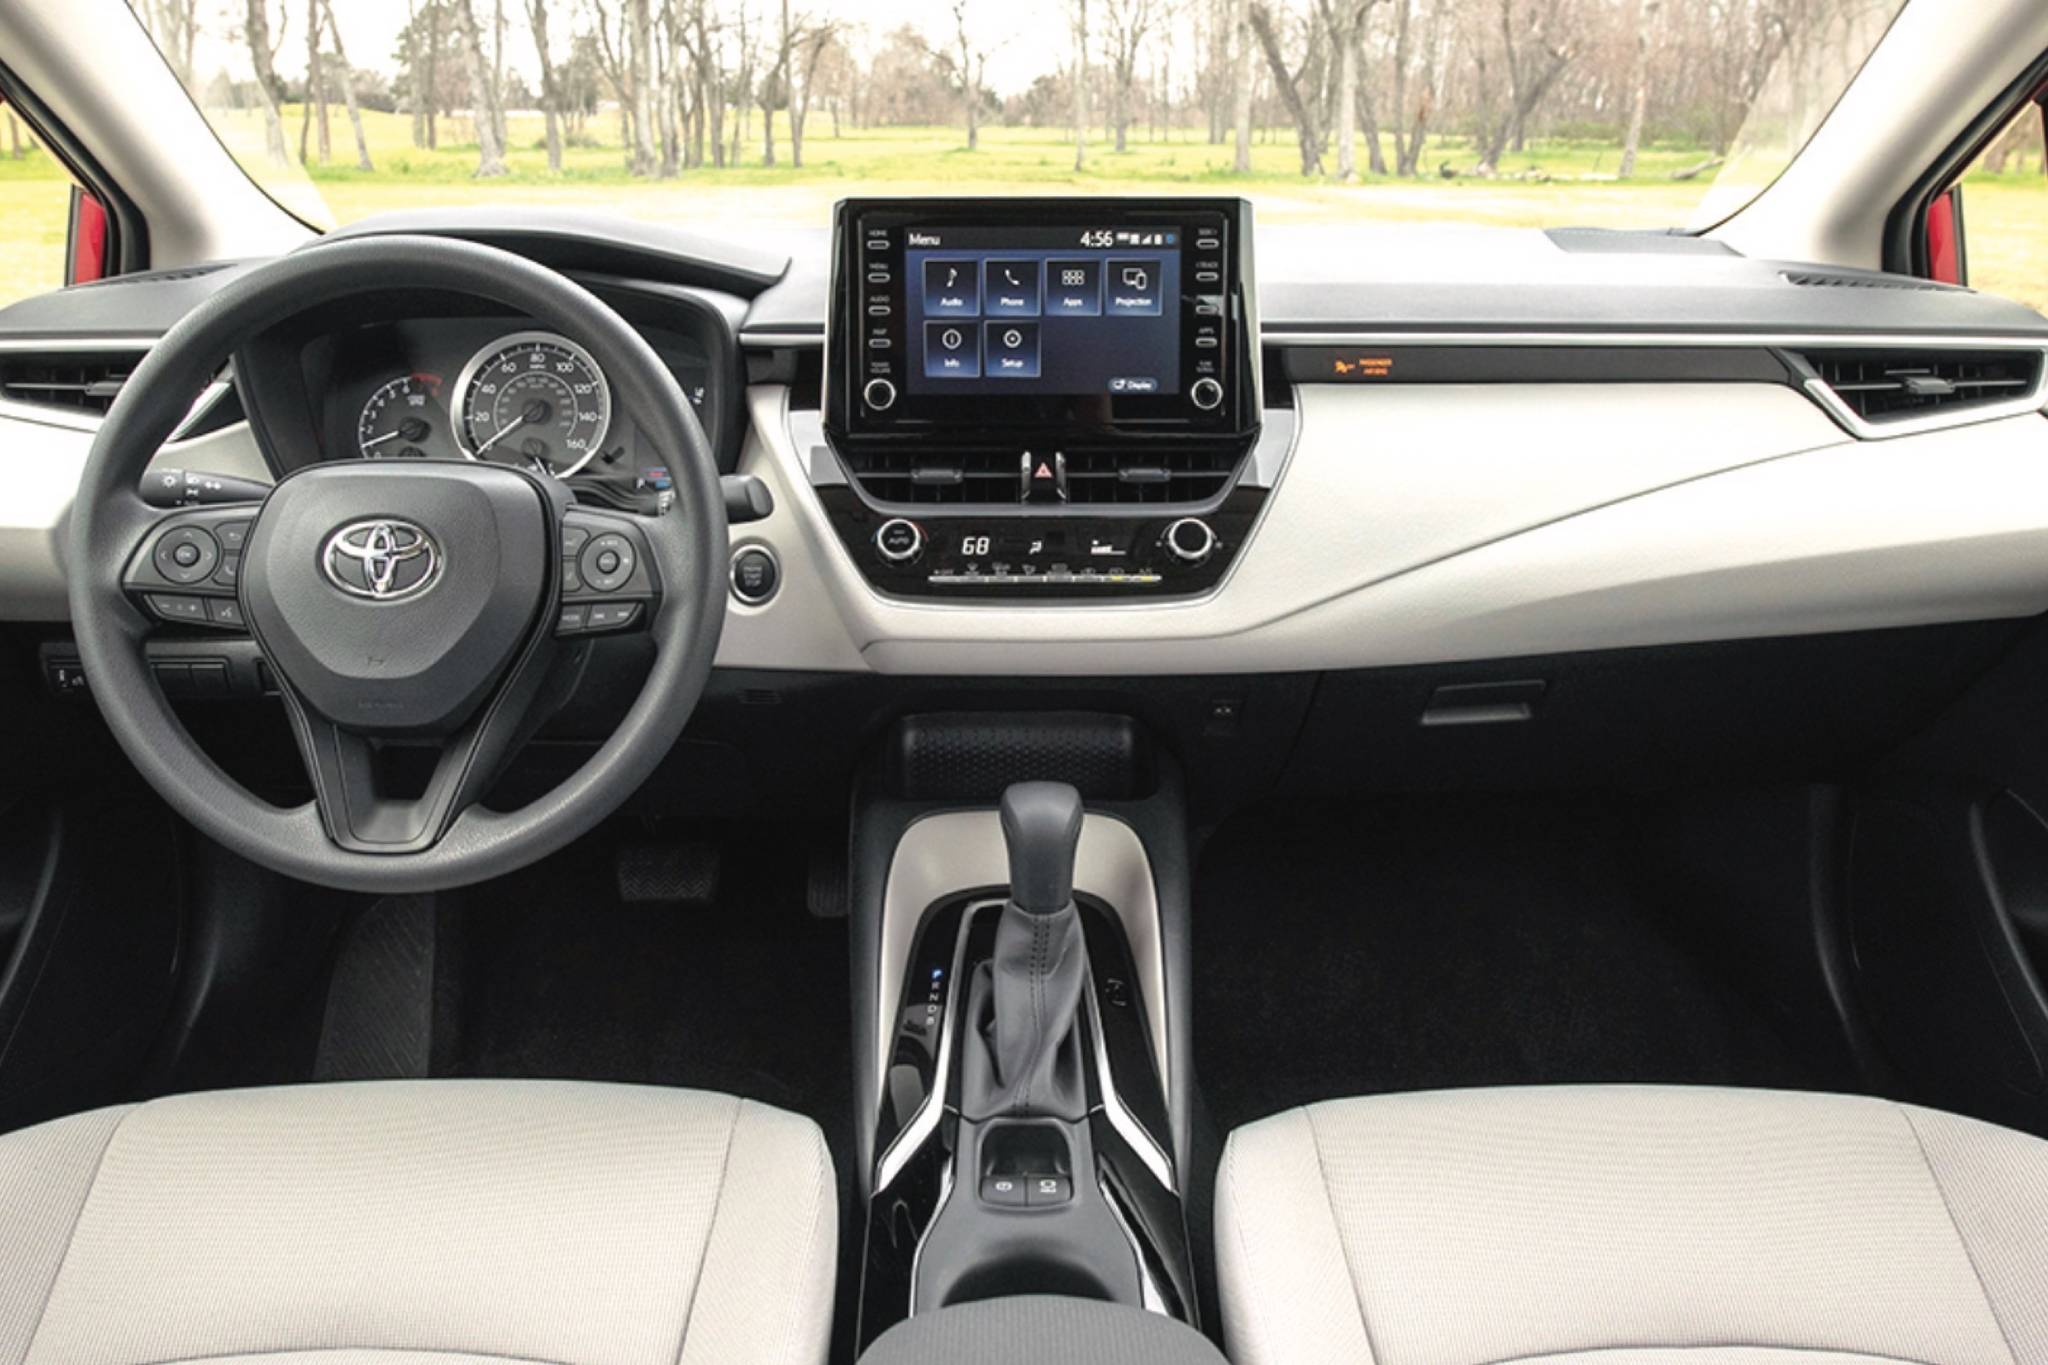 The Corolla's dashboard really shows how far this entry-level model has come, even in the last decade. Now, designers go for style as much as function, but that certainly wasn't always the case. Note how few buttons there are, other than on the steering wheel. Photo: Toyota